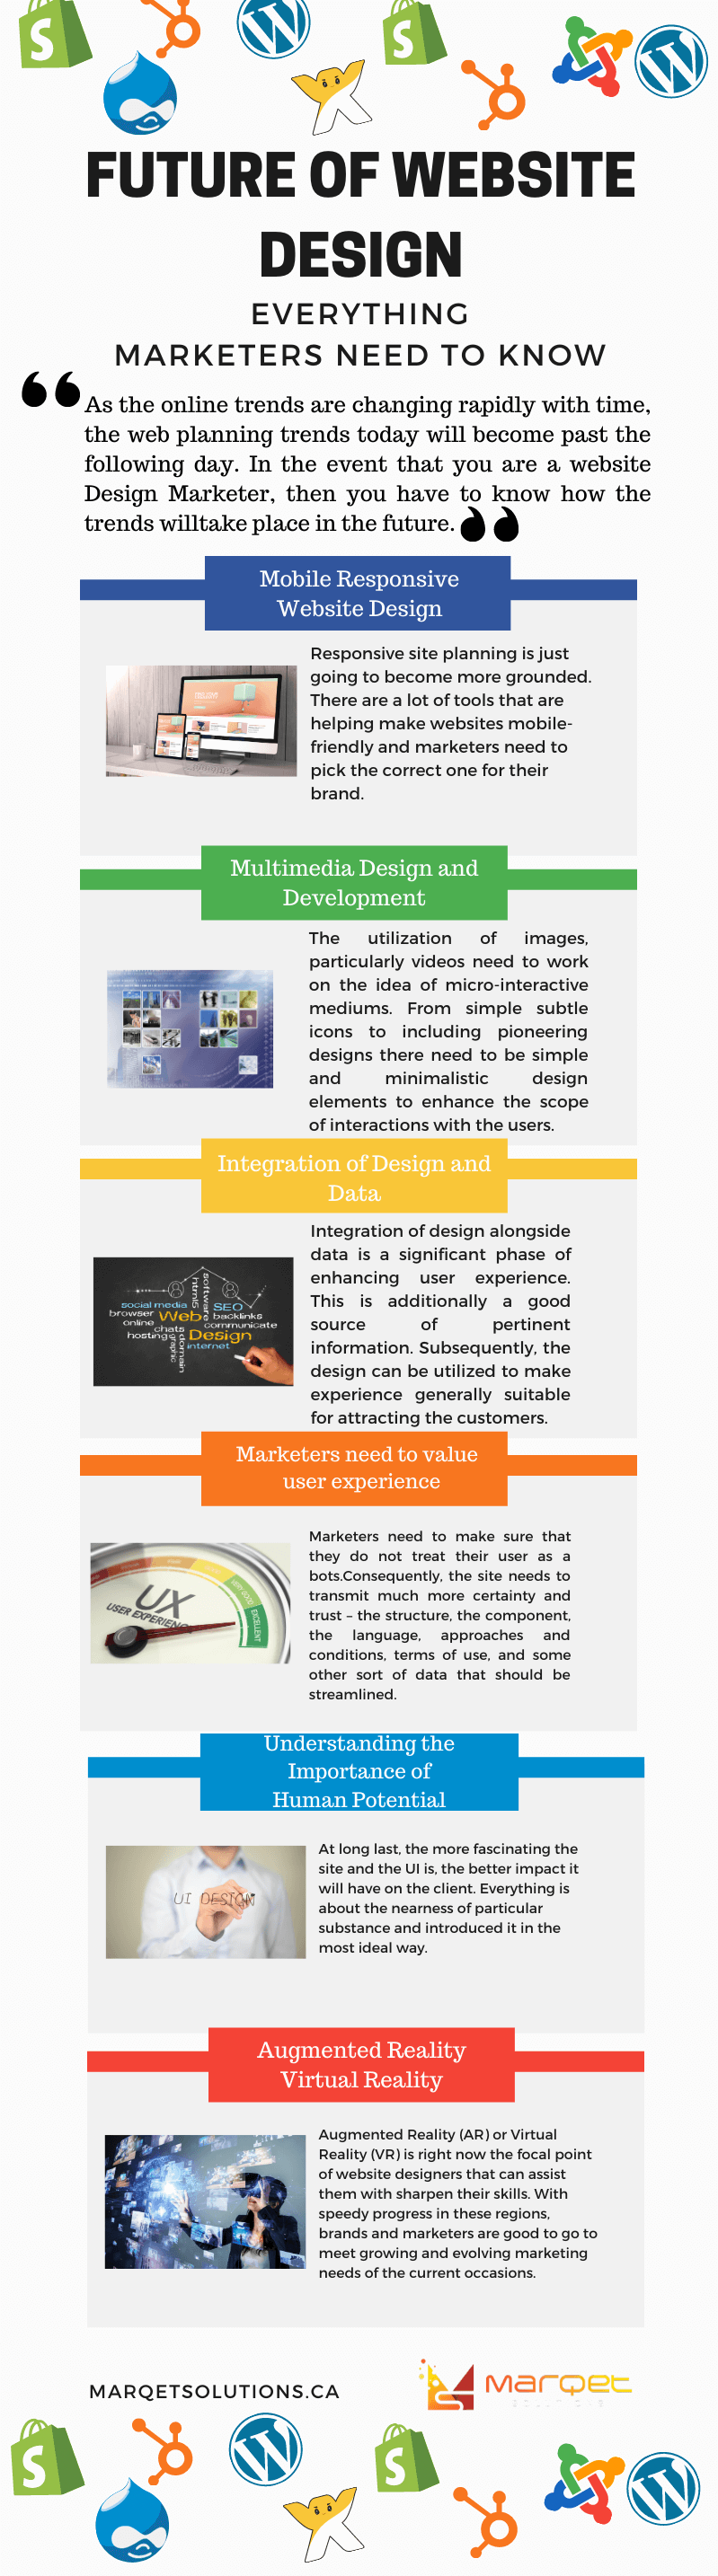 FUTURE OF WEBSITE DESIGN - technologydiving